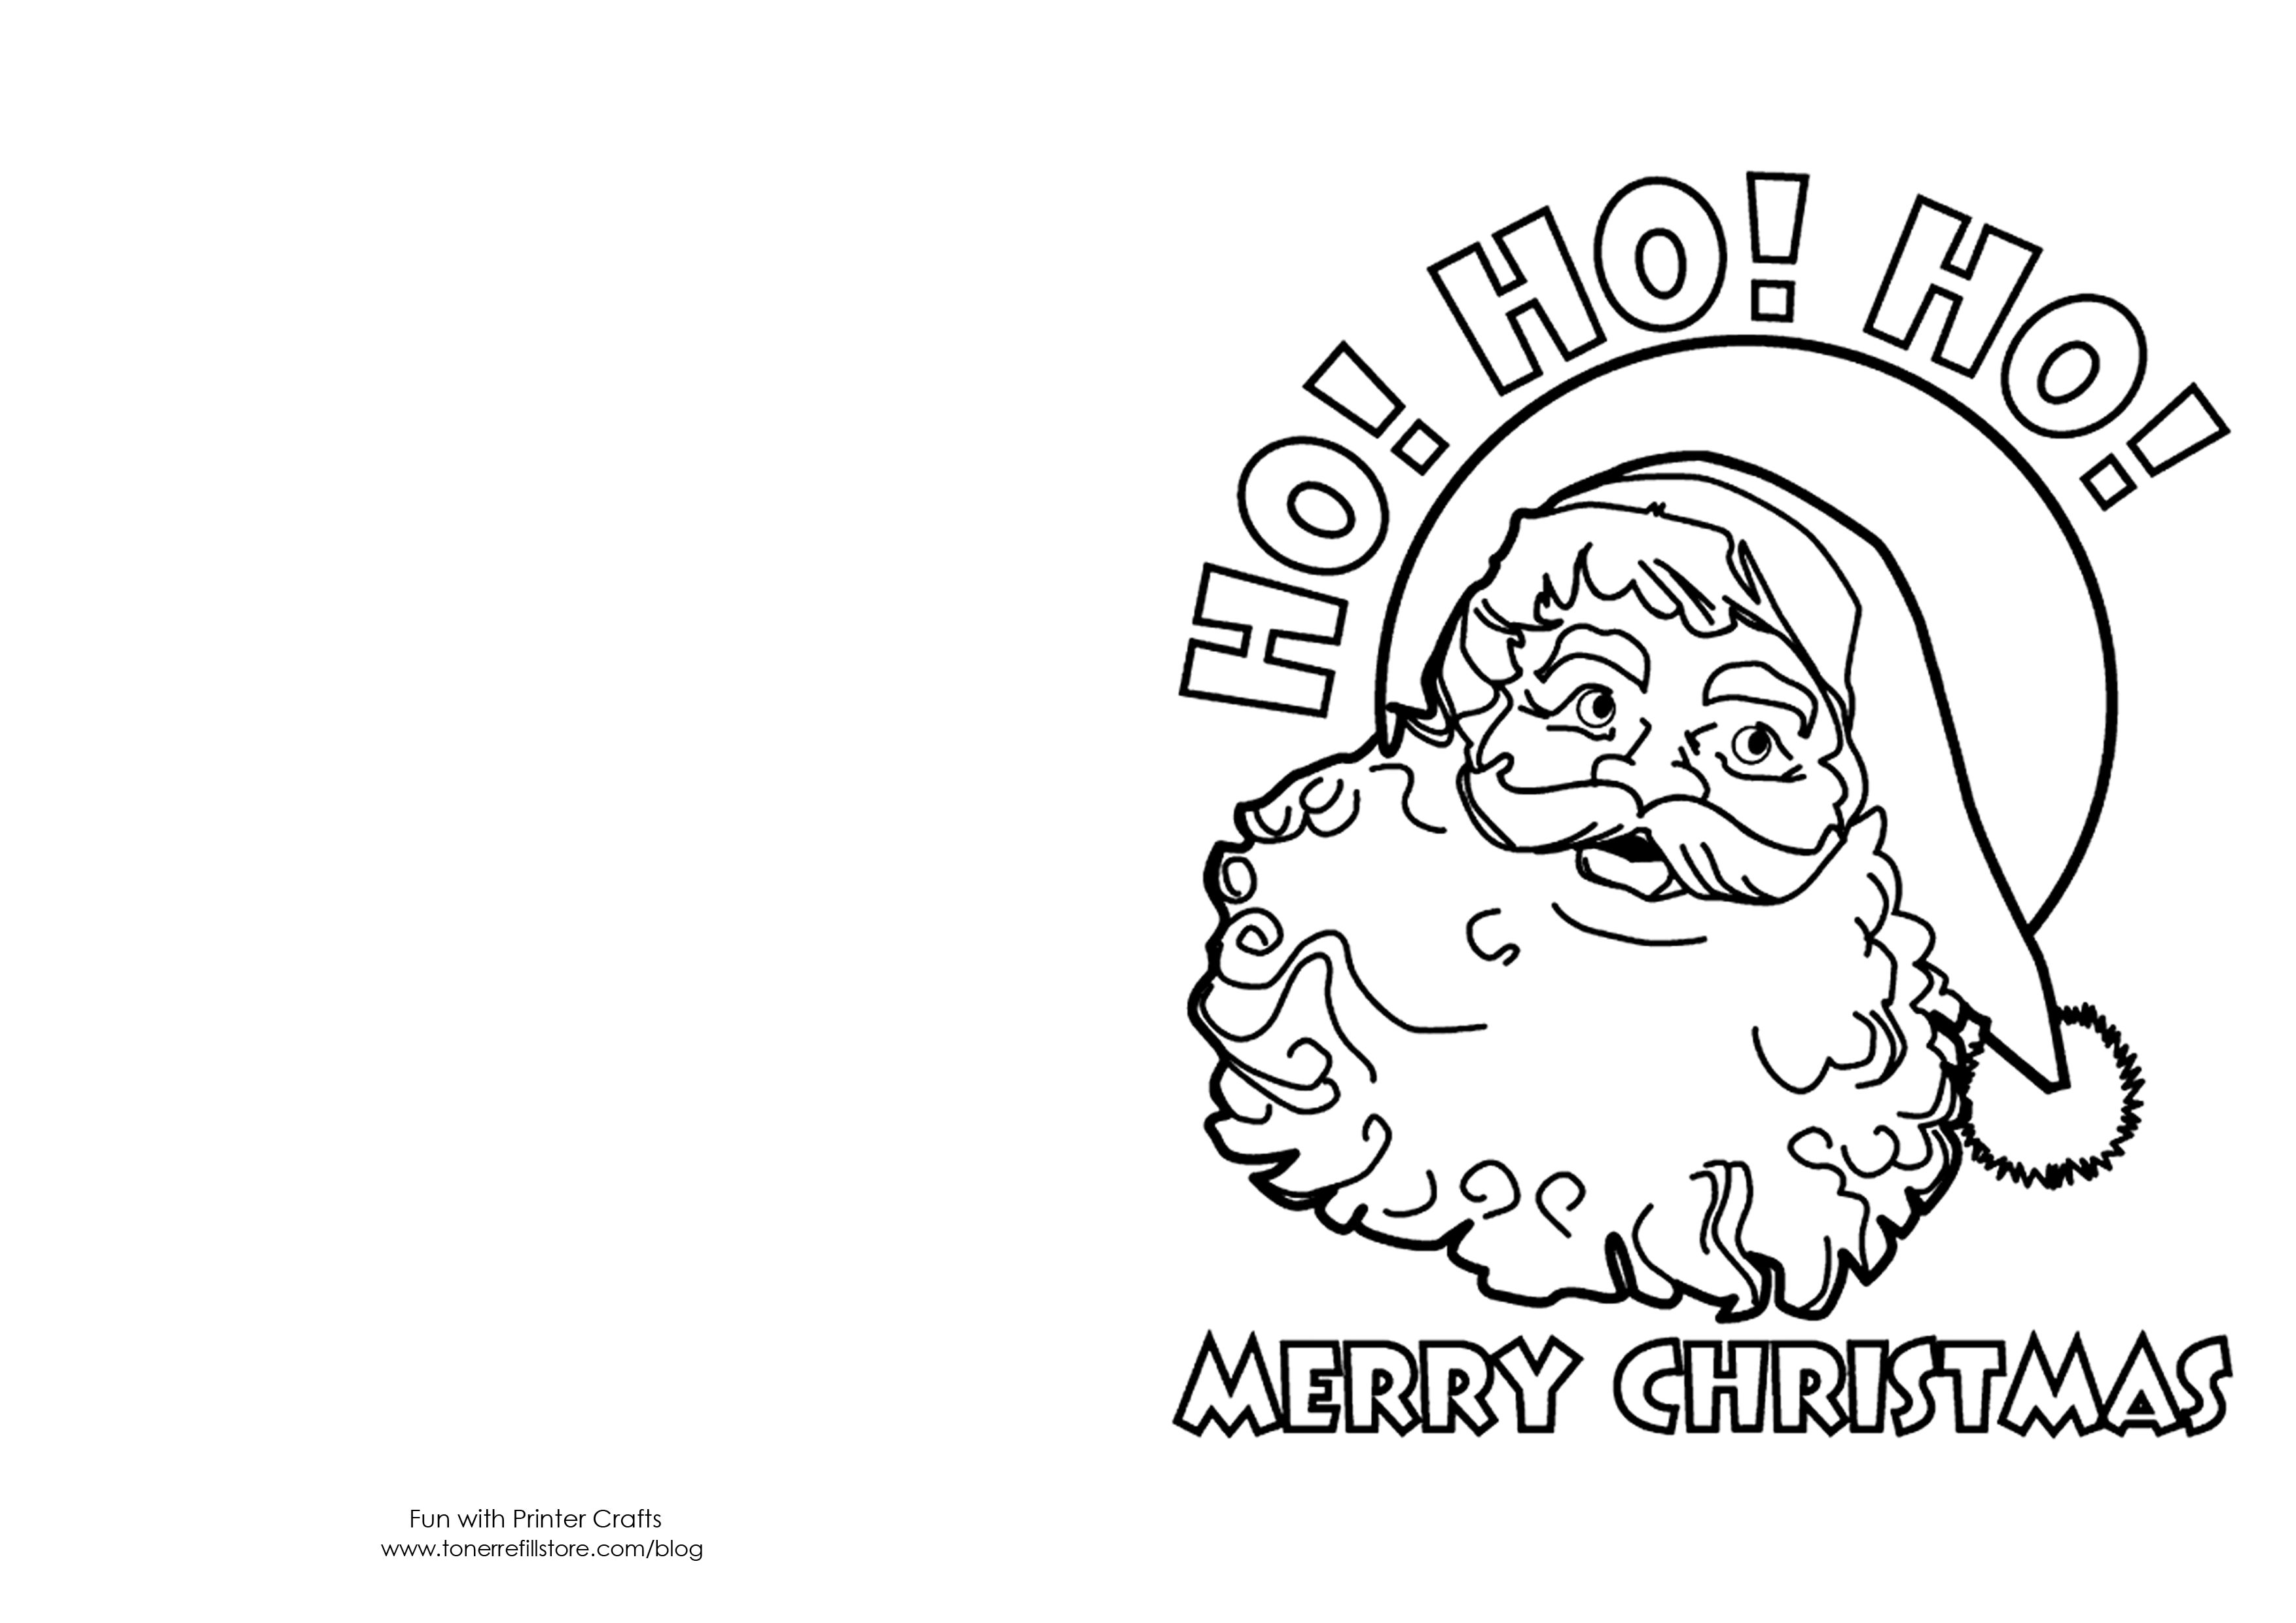 Coloring Pages ~ Coloring Pagesds Diy Christmas Card Idea Cut And - Free Printable Christmas Cards To Color